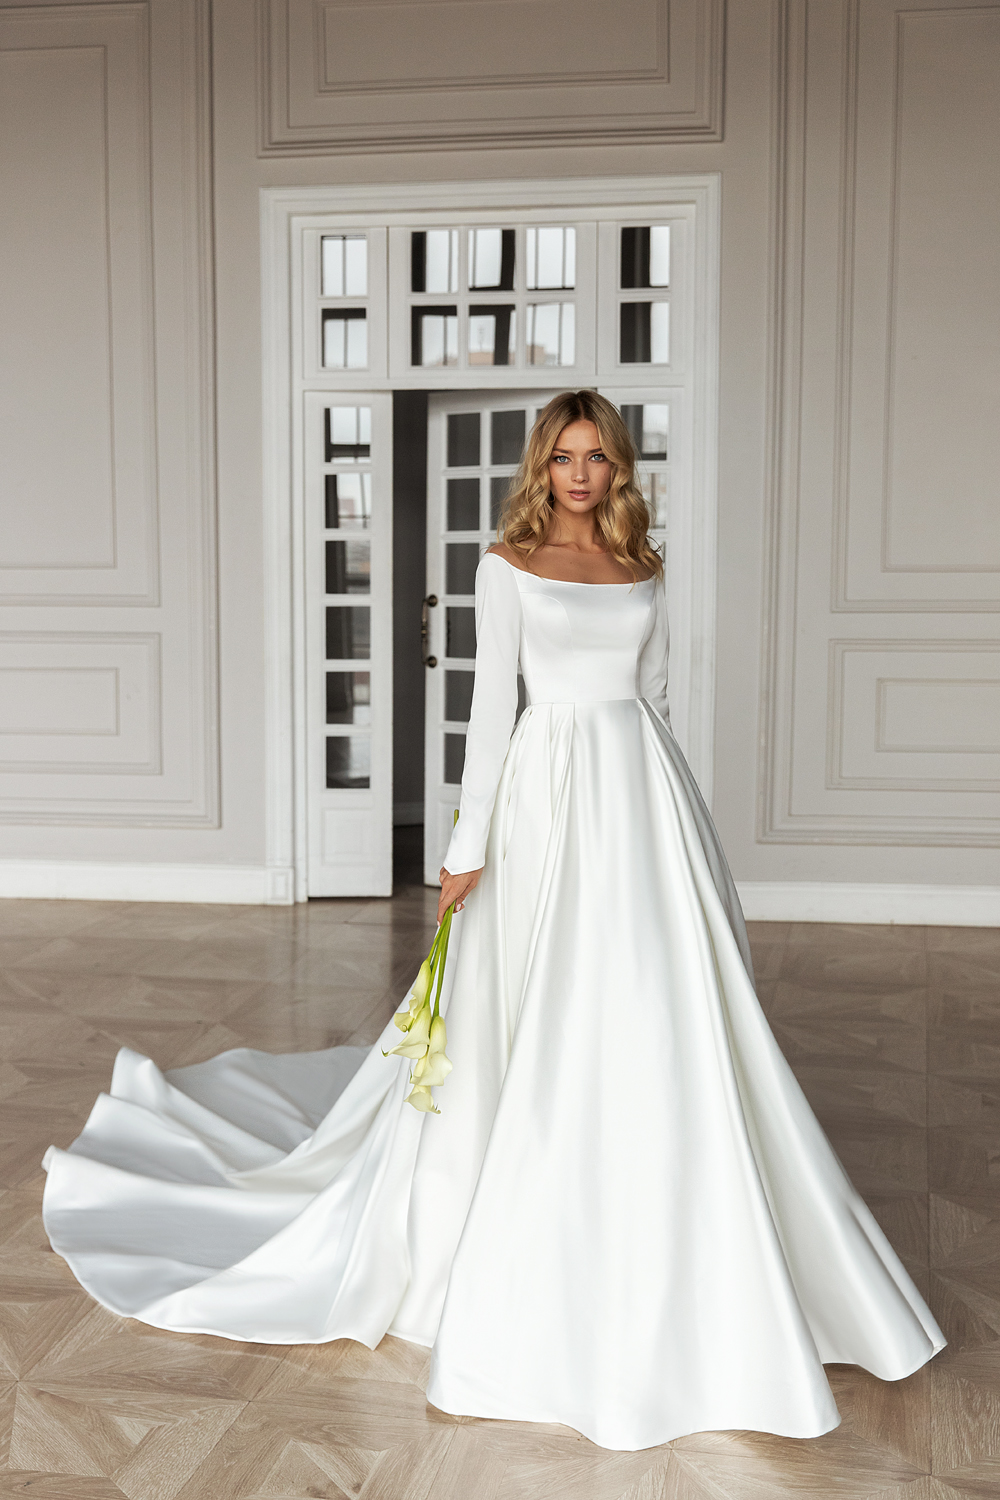 A Delicate And Tender Wedding Gown With A Deep Boat Neckline The Closed A Line Dress Is Made Of Wedding Dress Sleeves Modern Wedding Gown Wedding Dresses Lace [ 1500 x 1000 Pixel ]